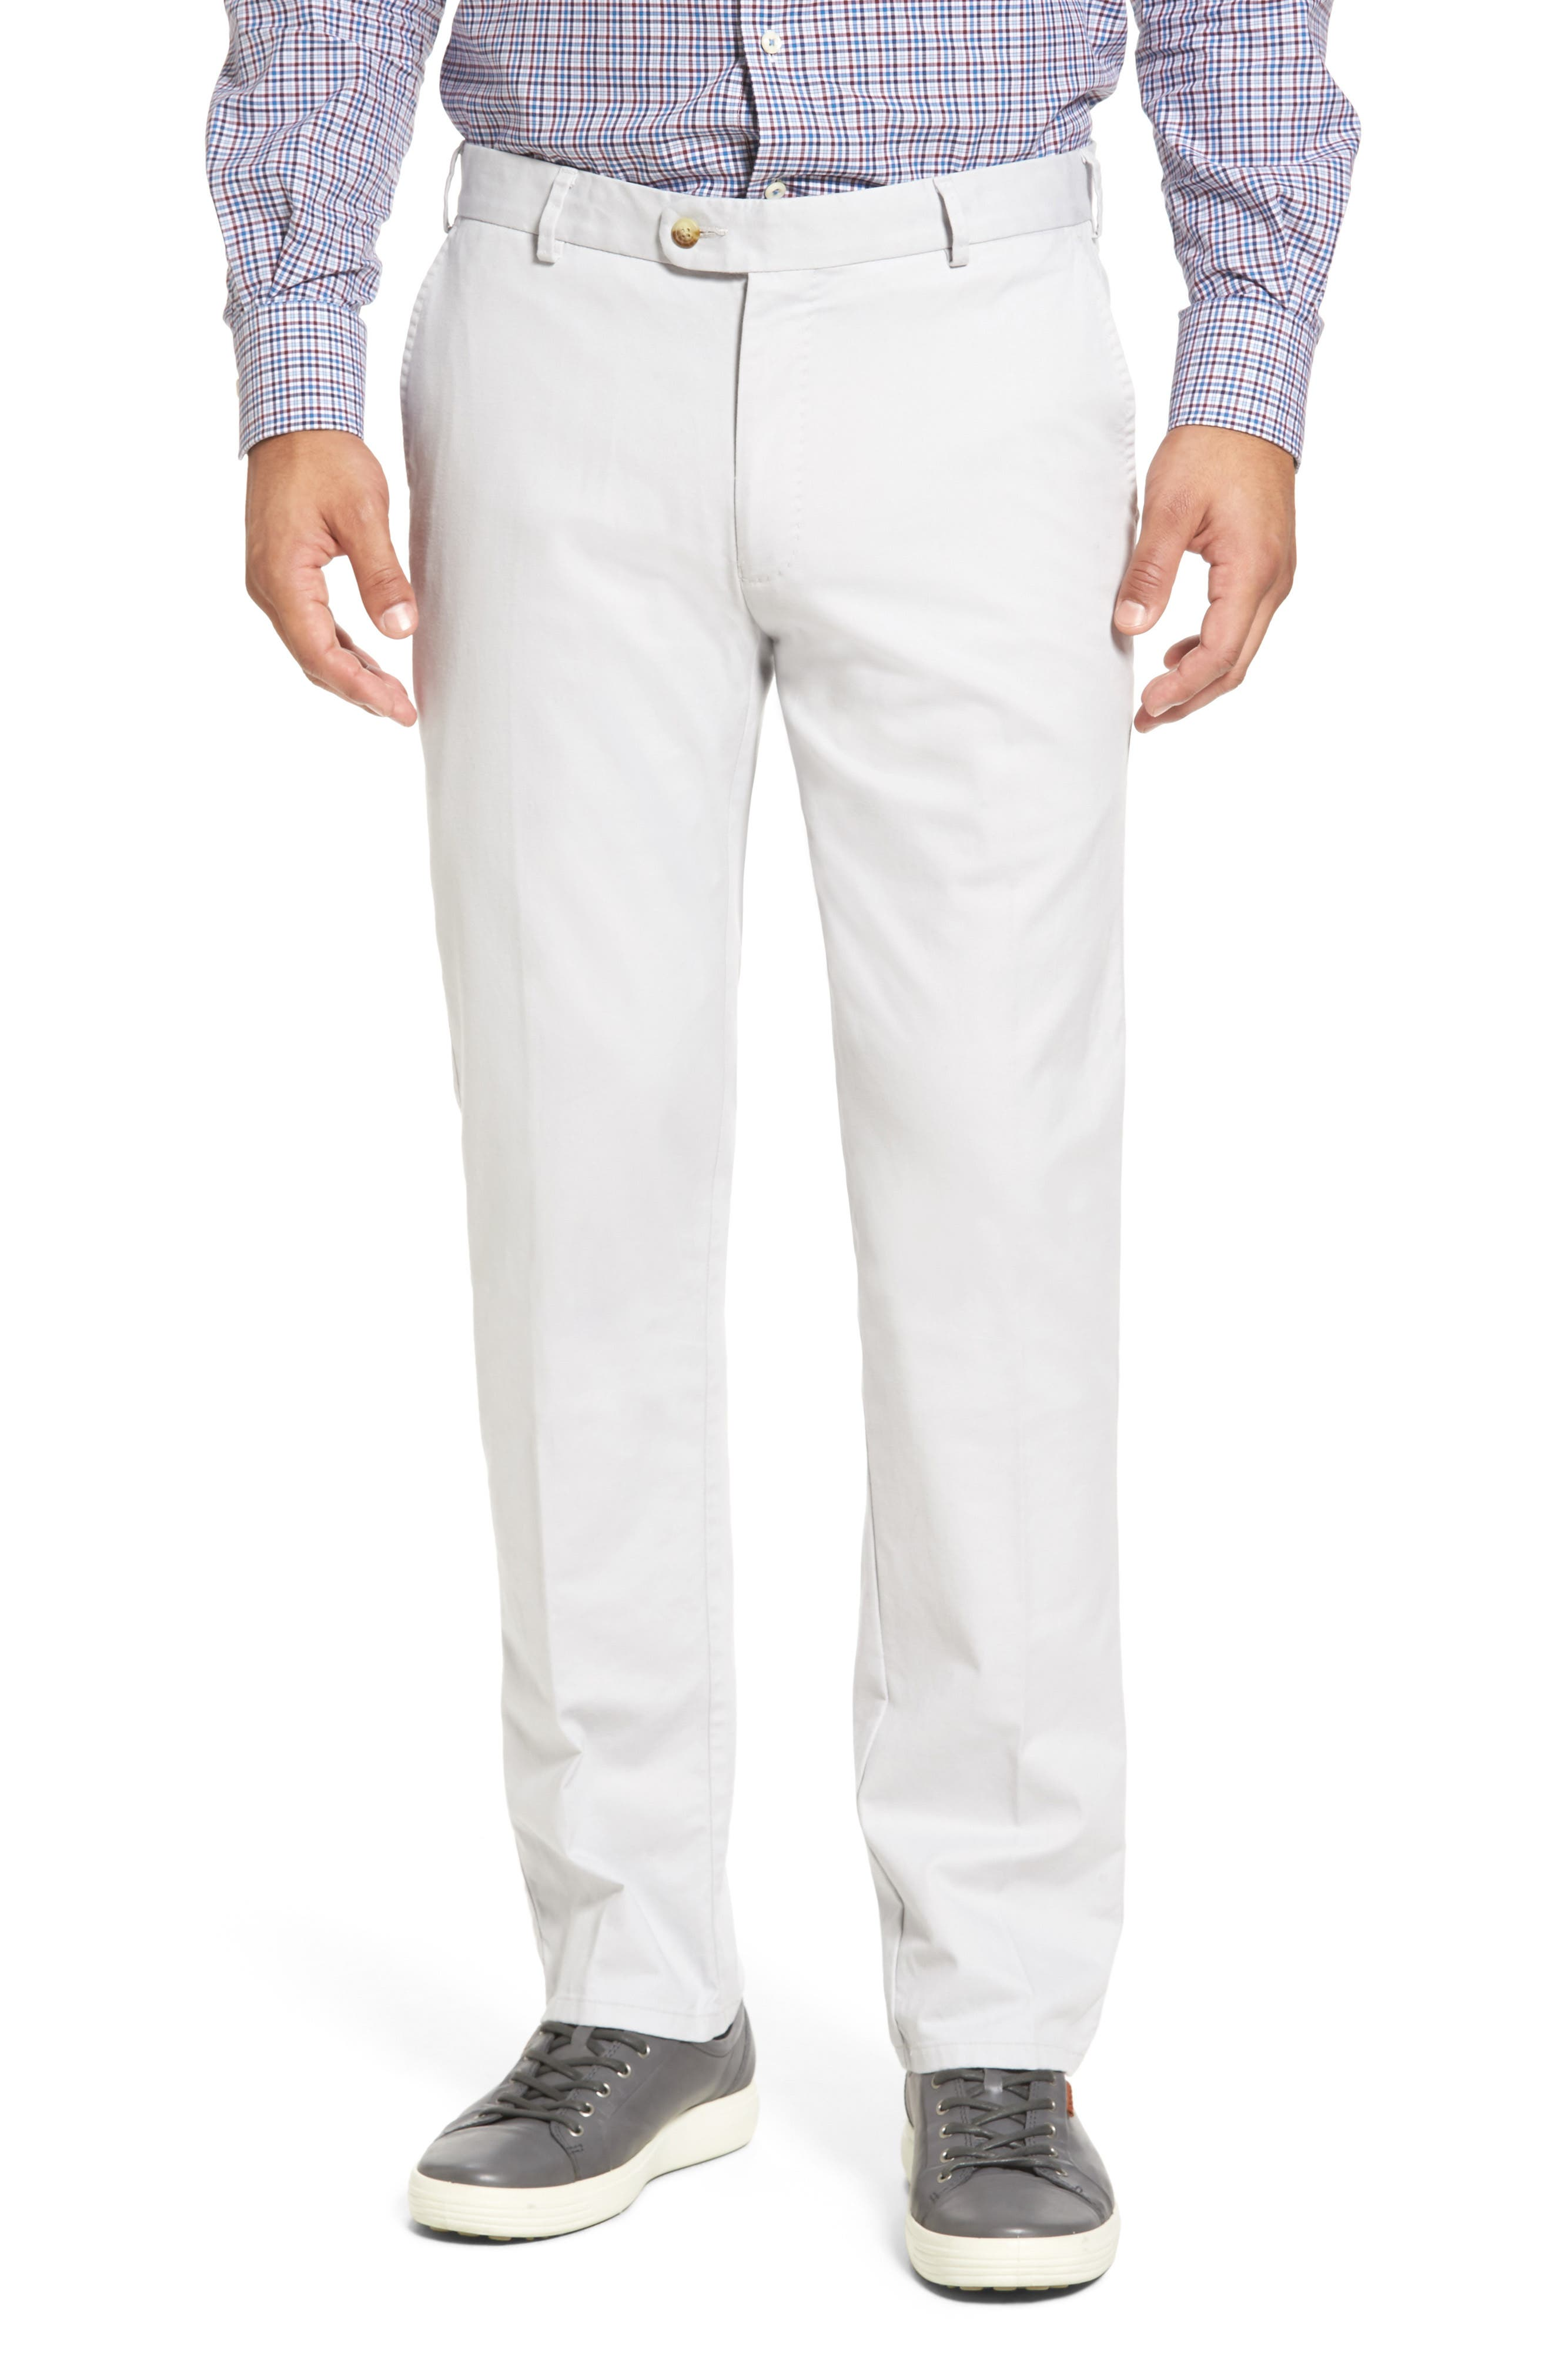 PETER MILLAR, Twill Pants, Main thumbnail 1, color, 050